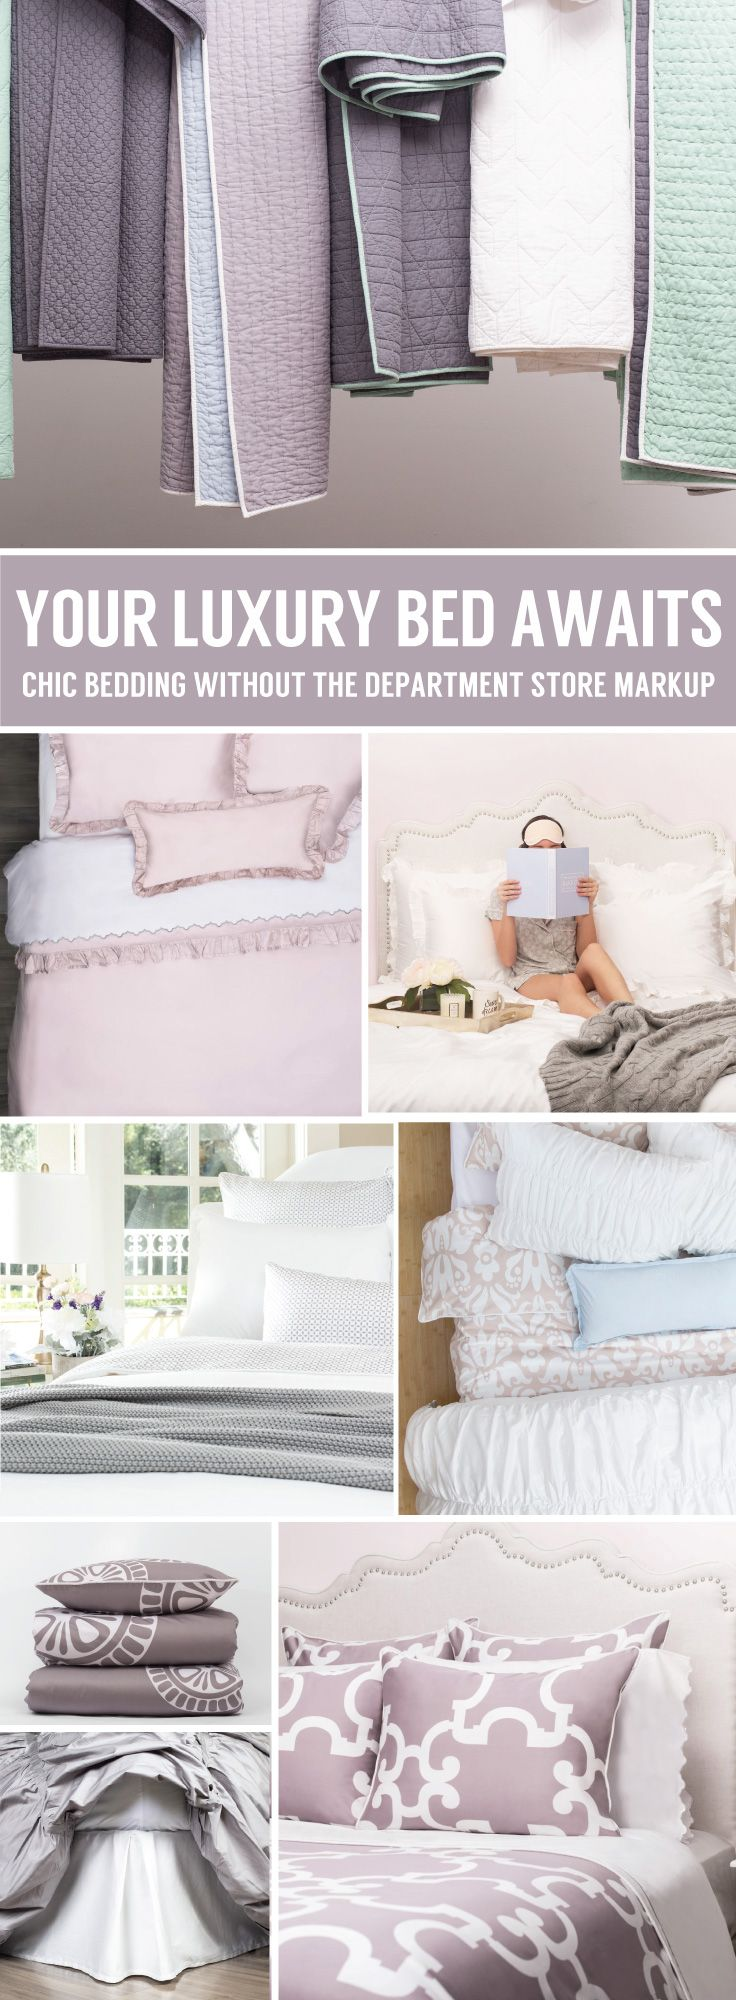 Bedding jardin collection bedding collections bed amp bath macy s - From Luxury Sheets To Designer Bedding And Colorfully Patterned Duvets Find Your Perfect Bedding That